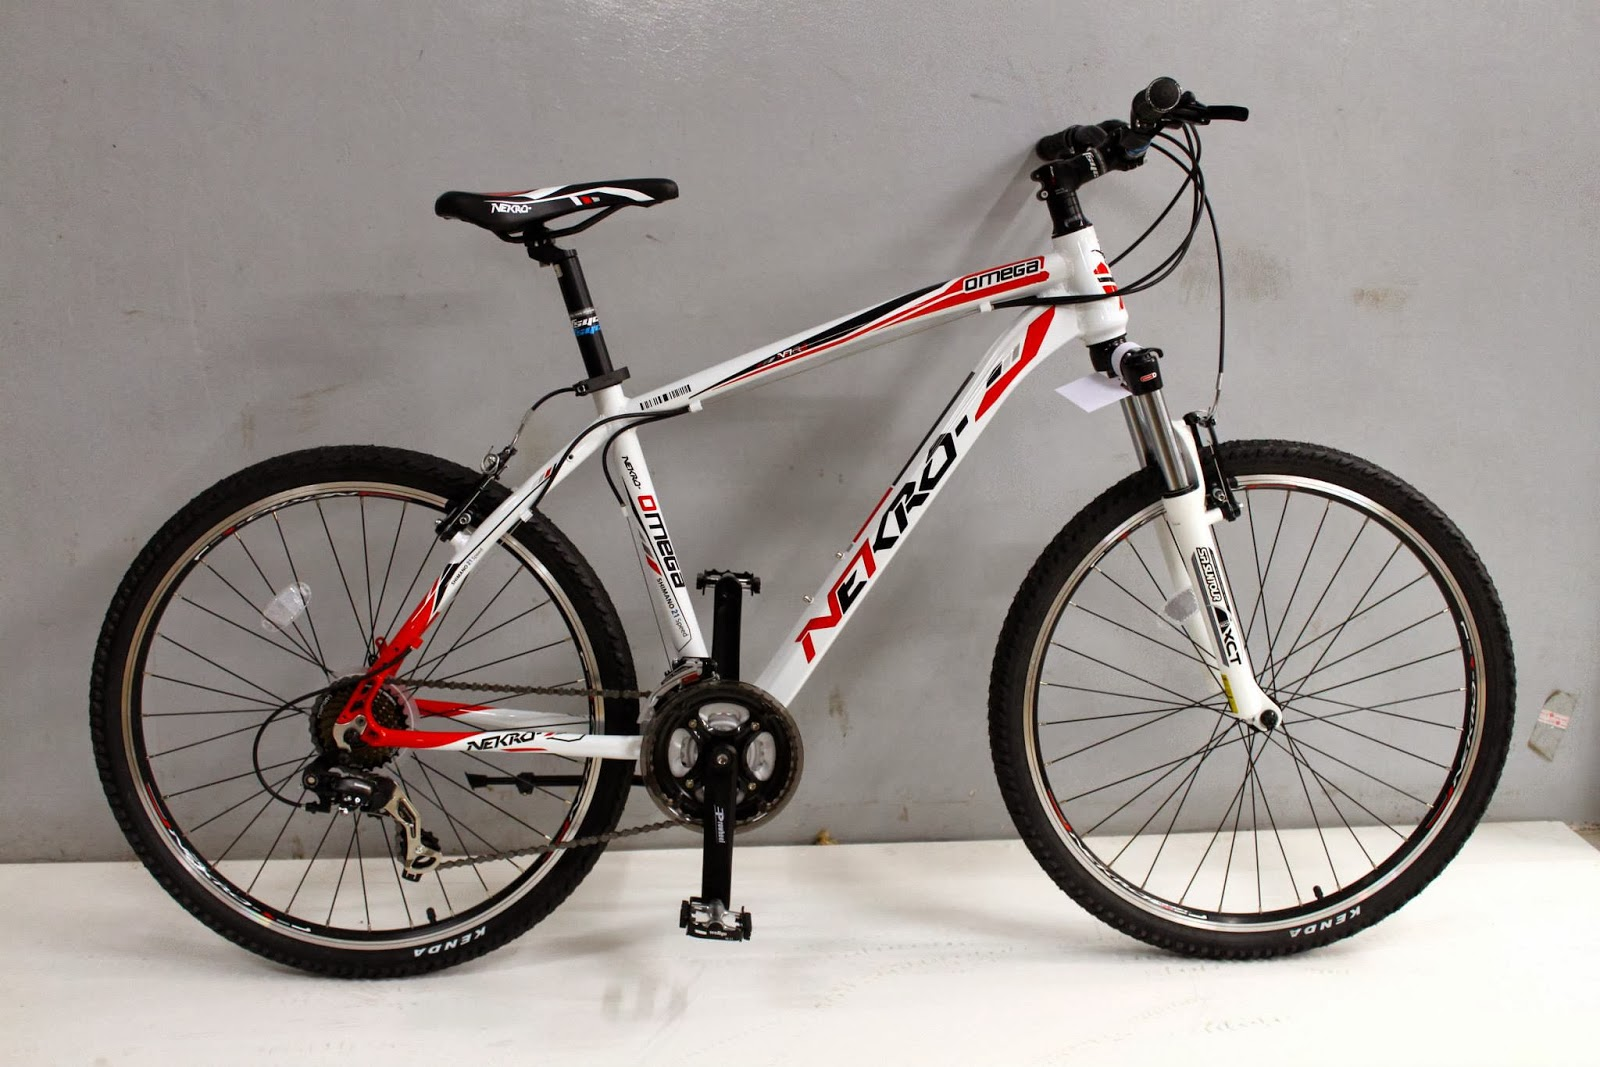 Nekro Omega Bicycle | BICYCLE PRICE IN BANGLADESH